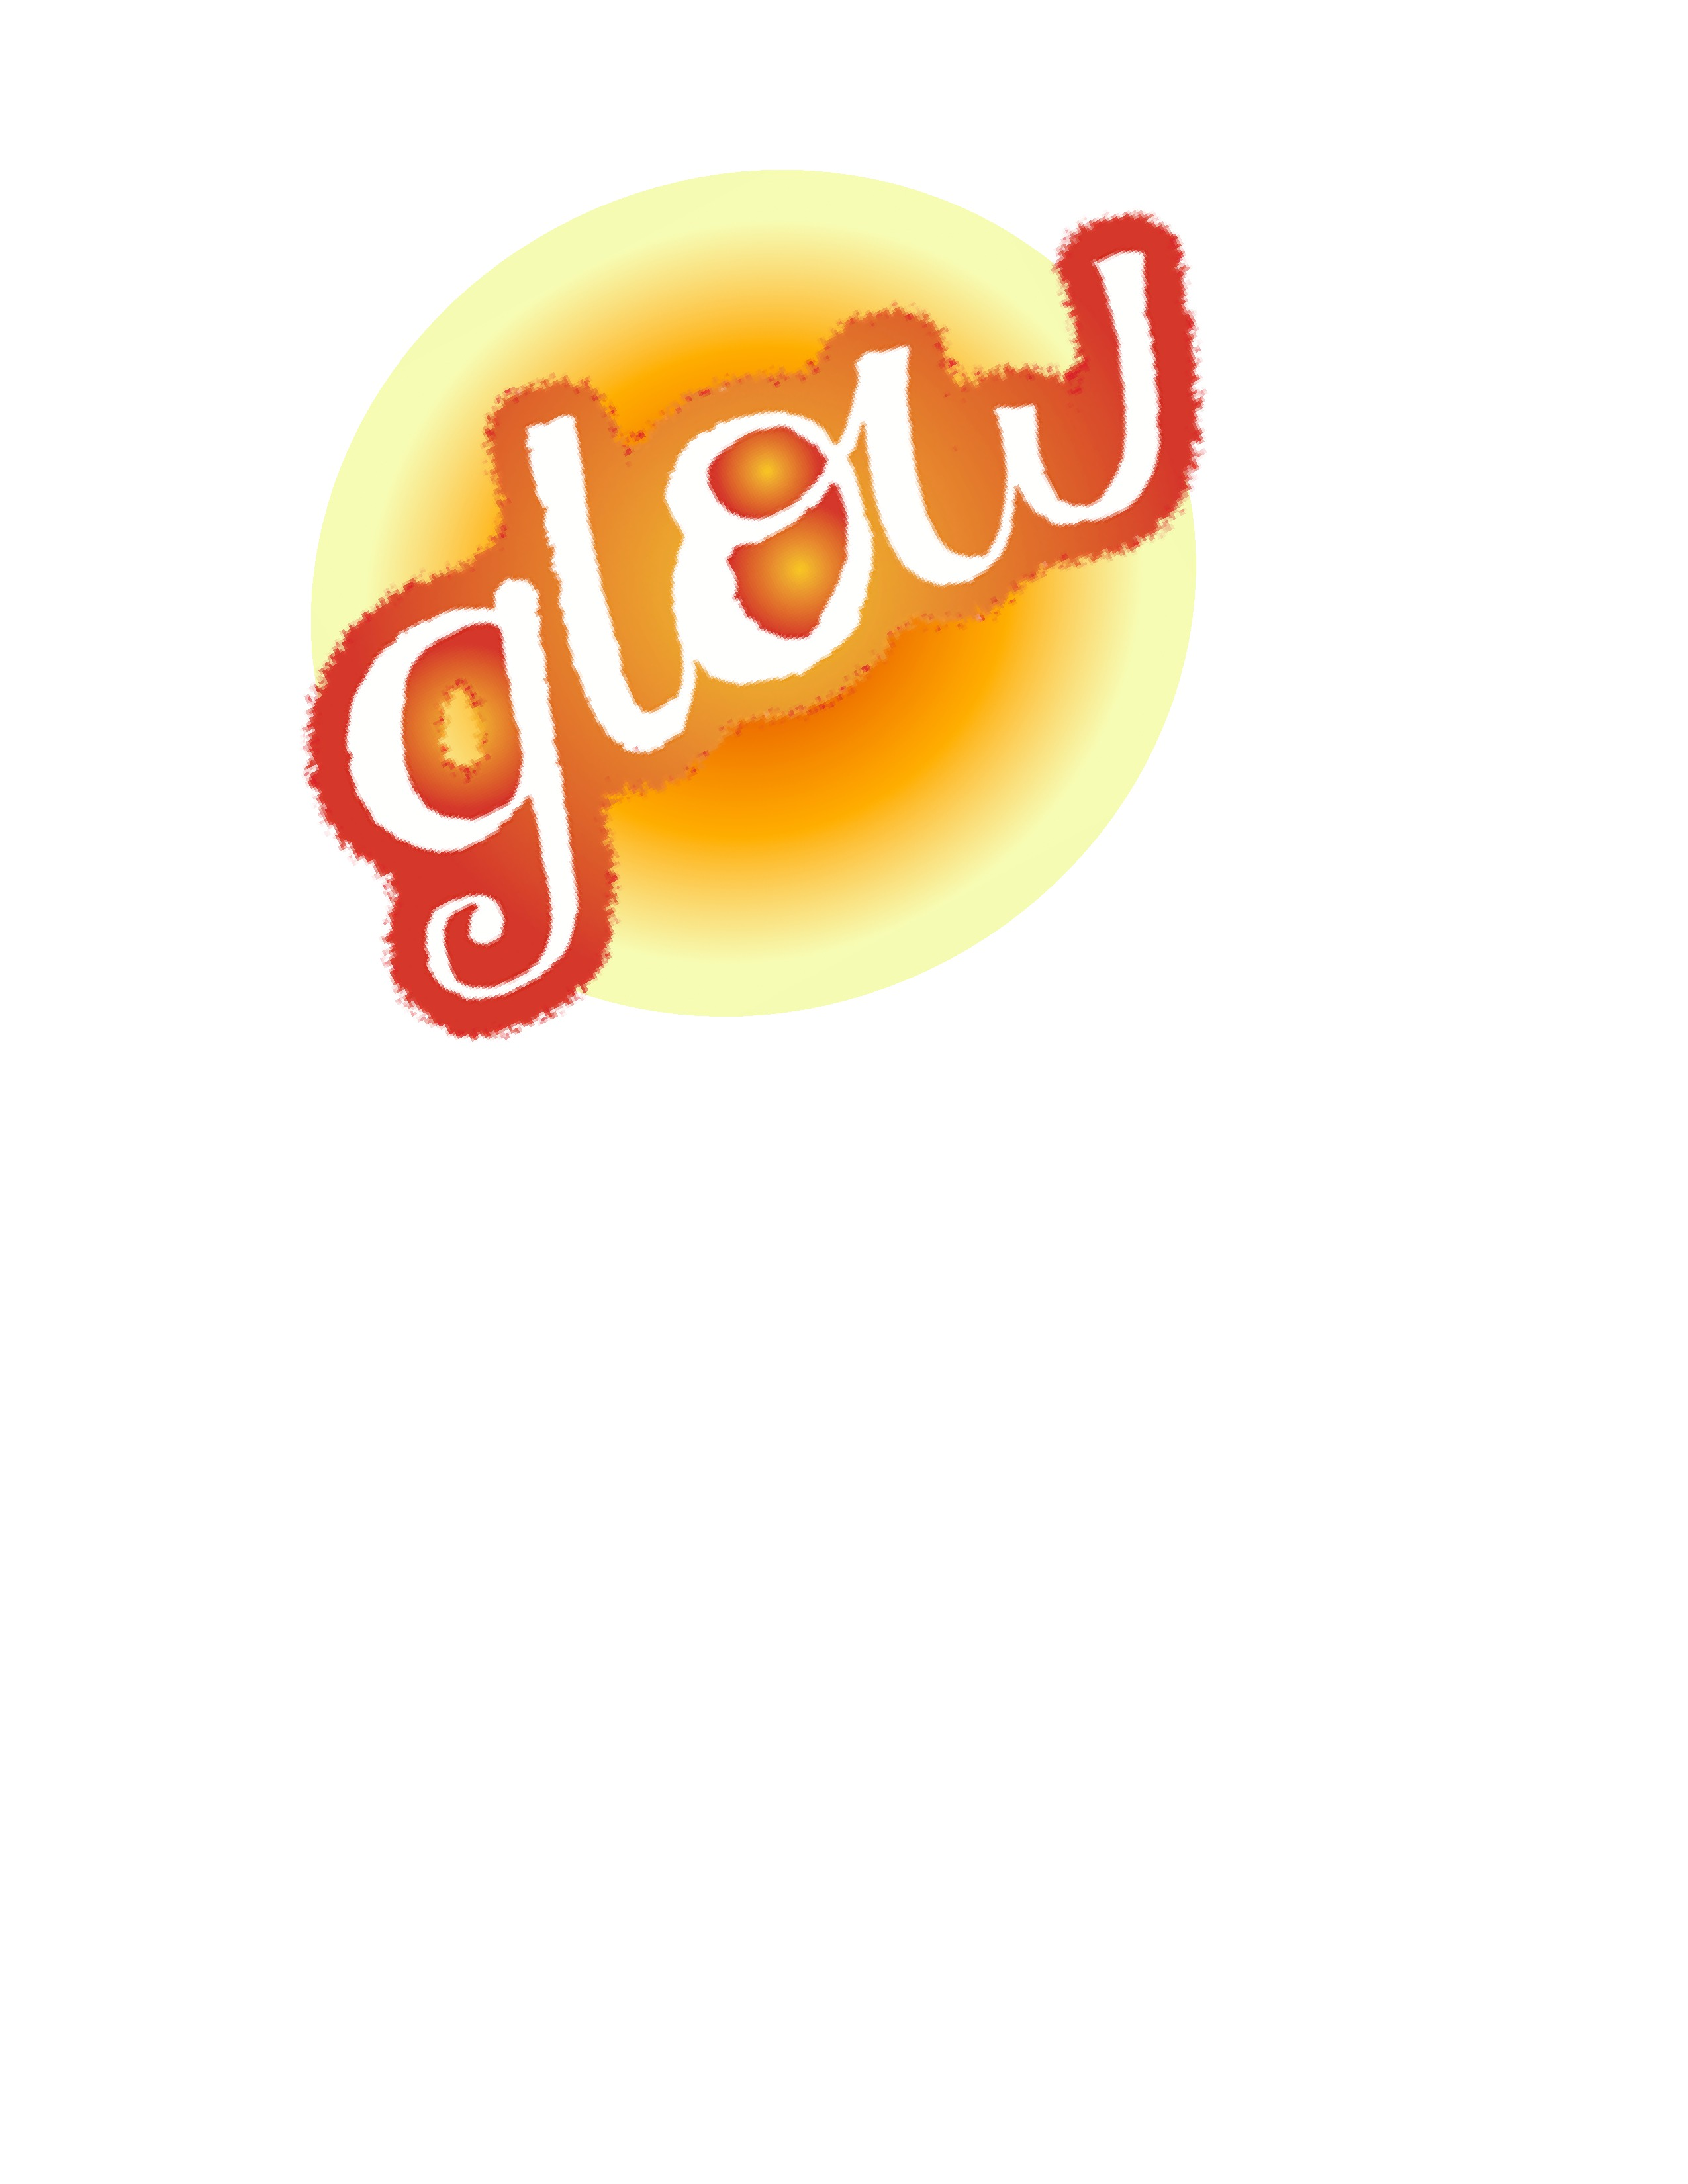 GLOW! A Celebration of Light with Music, Food, and Community